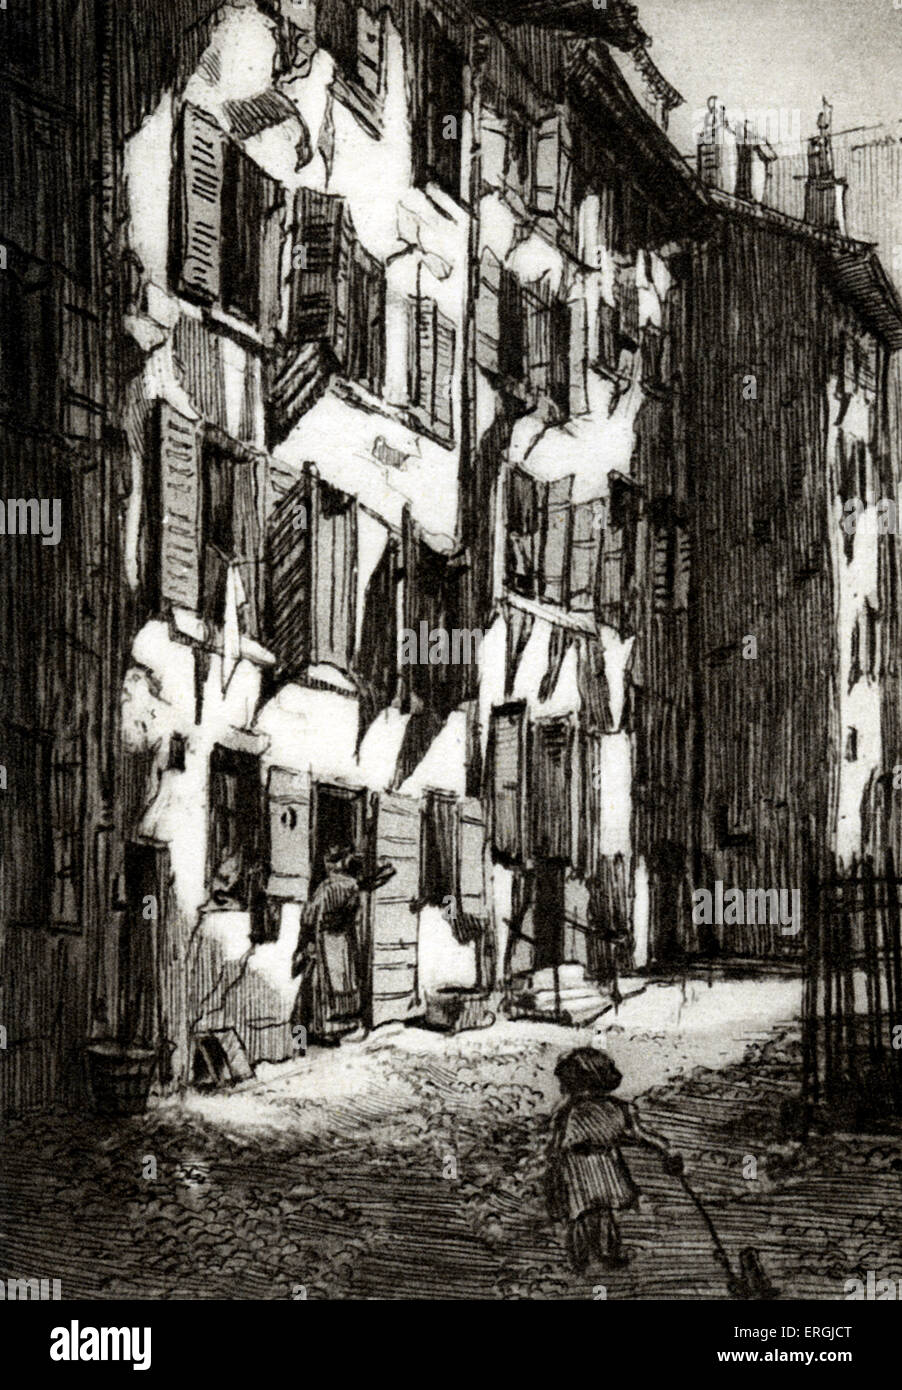 Old quarter of Geneva. Monochrome print from illustration by Verdier (dates unknown). - Stock Image